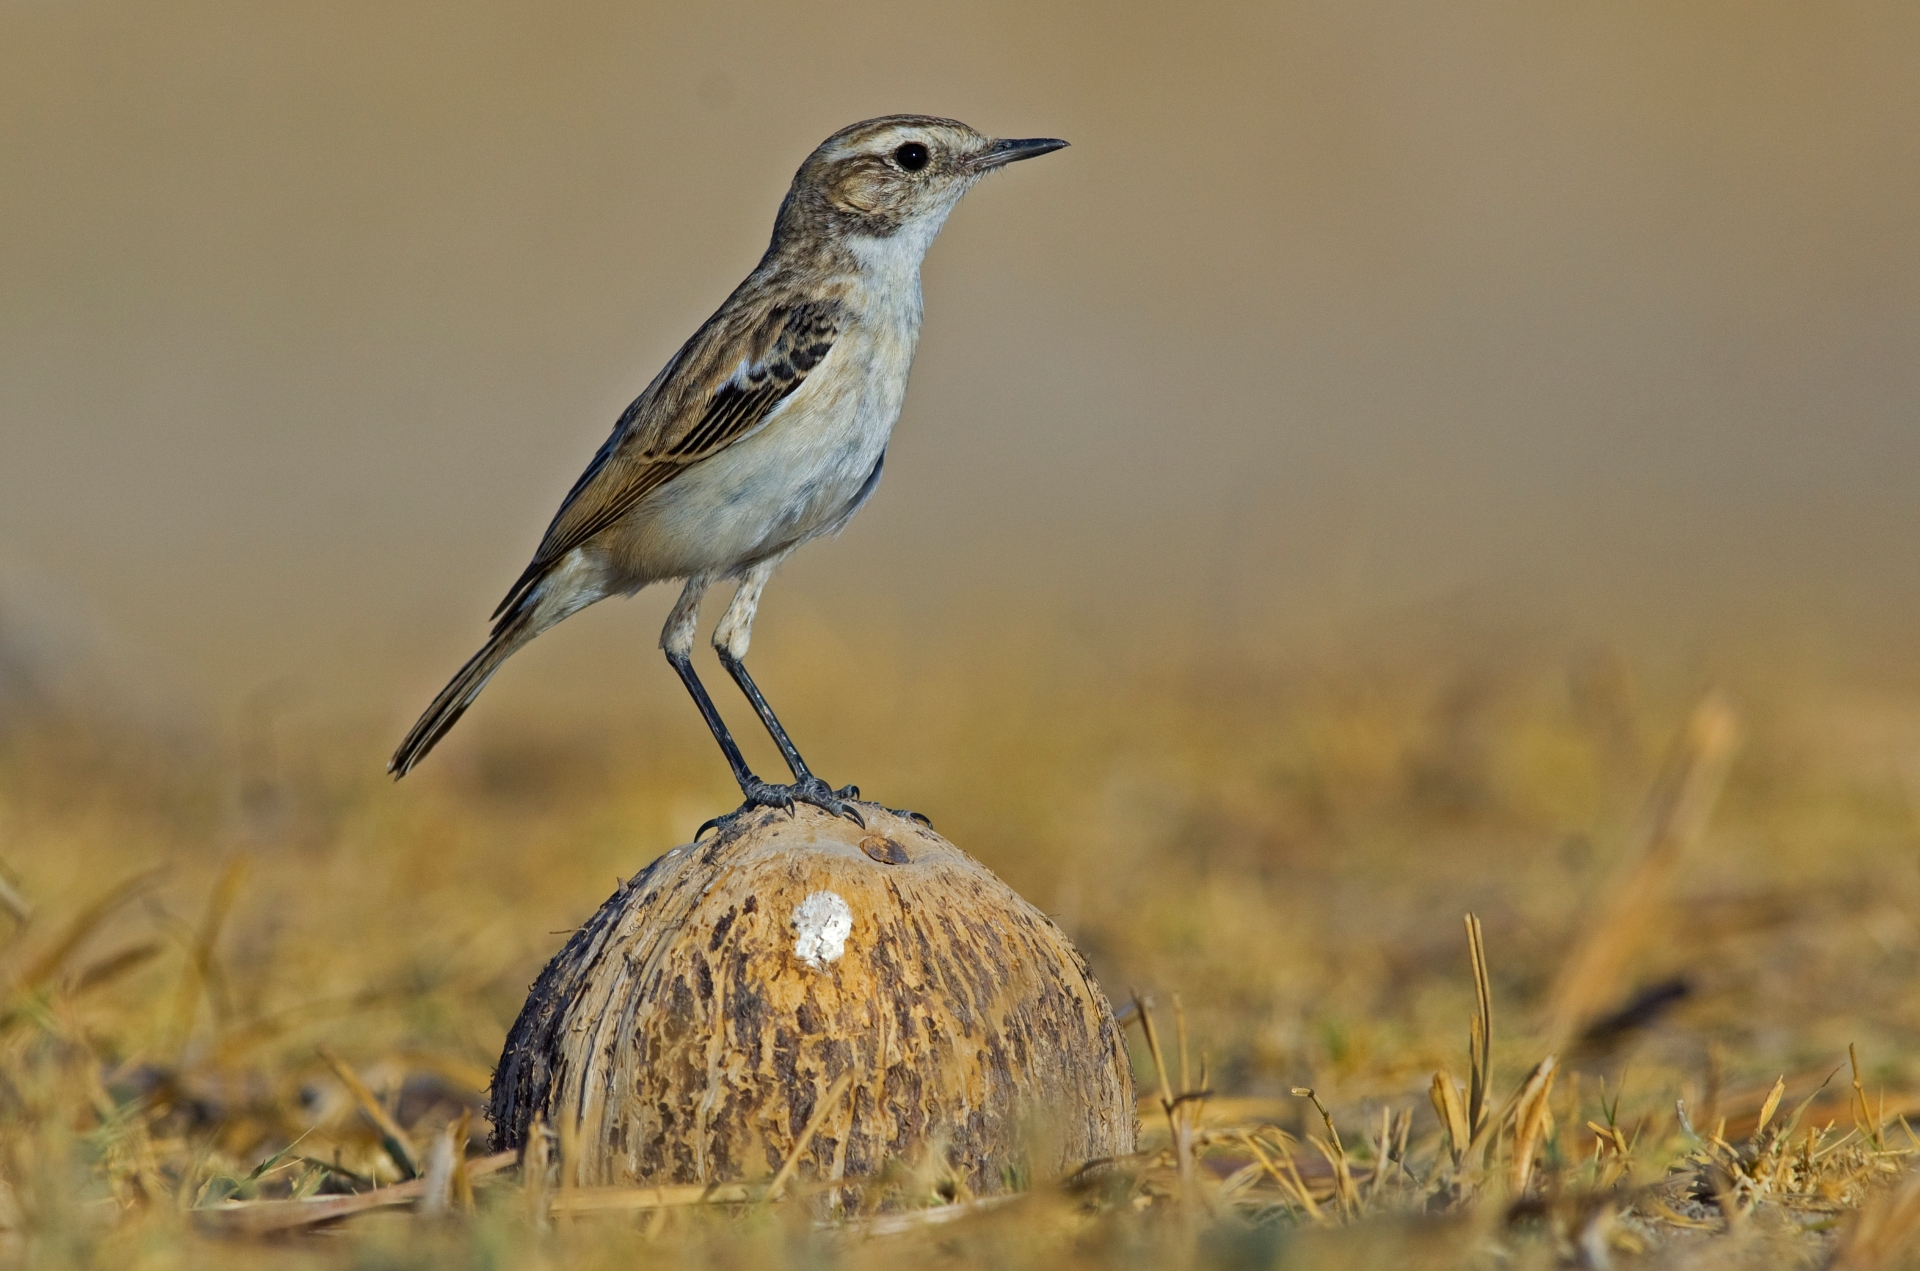 The white-browed bushchat is mostly seen in sandy, desert plains. Its scientific name is Saxicola macrorhyncha, where saxicola literally means 'stone-dweller'. Photo: Dhritiman Mukherjee </br> The bird gets its name from its very noticeable white eyebrows. Cover Photo: Devesh Gadhavi